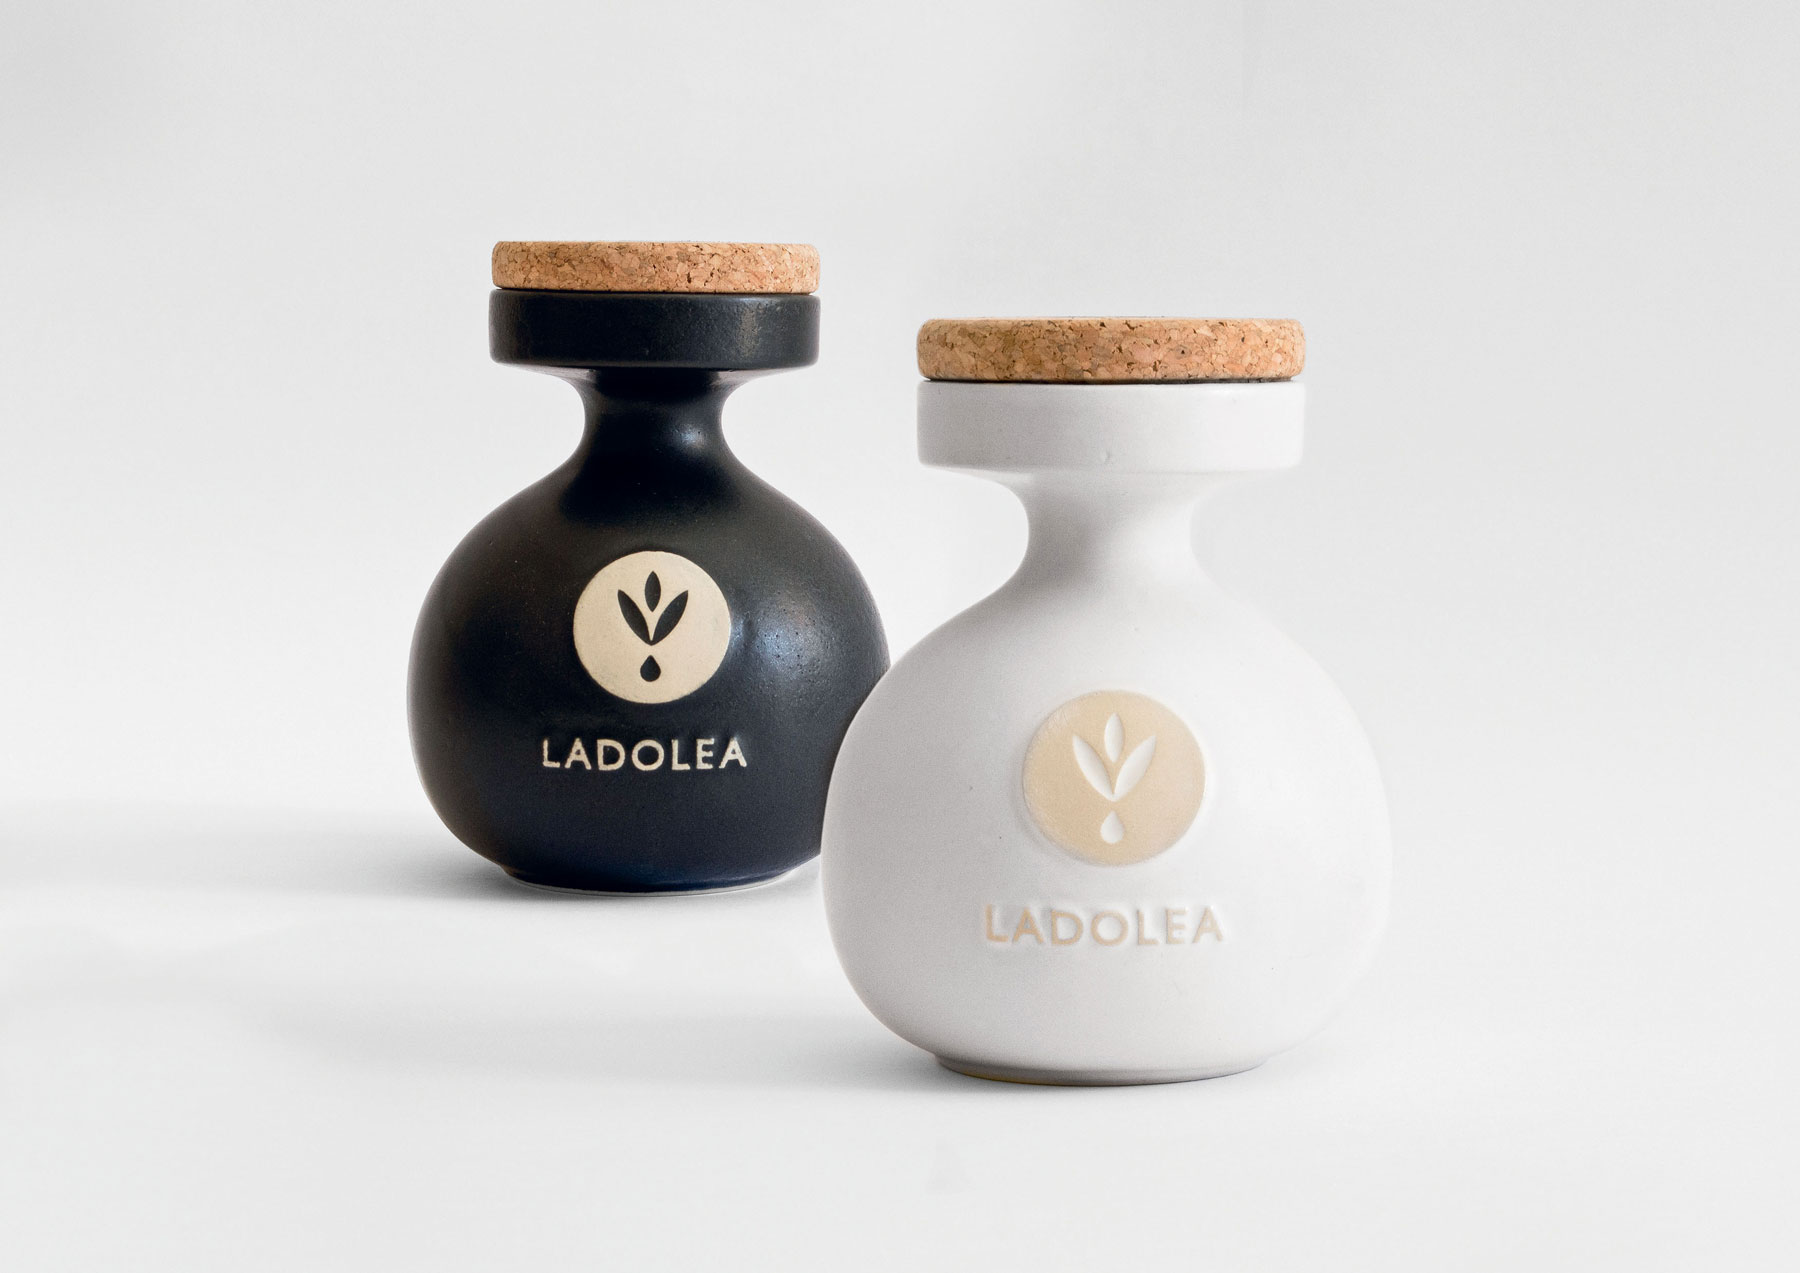 Ladolea Olive Oil The Greek Foundation